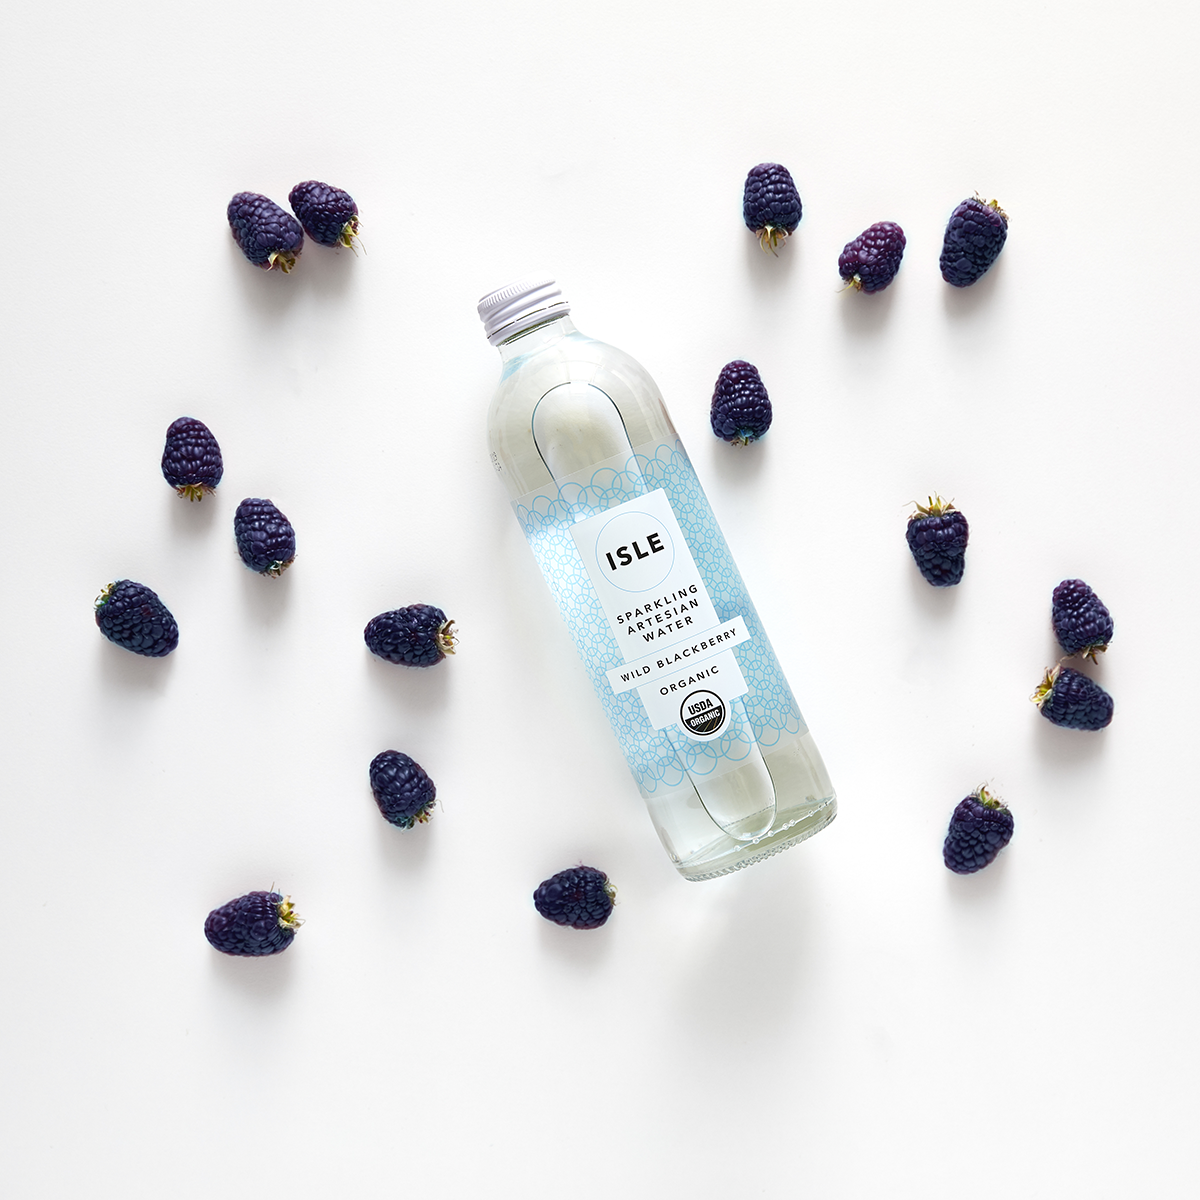 WILD BLACKBERRY - Enjoy the very berry delights of wild blackberry extract infused with sparkling New Zealand artesian spring water.